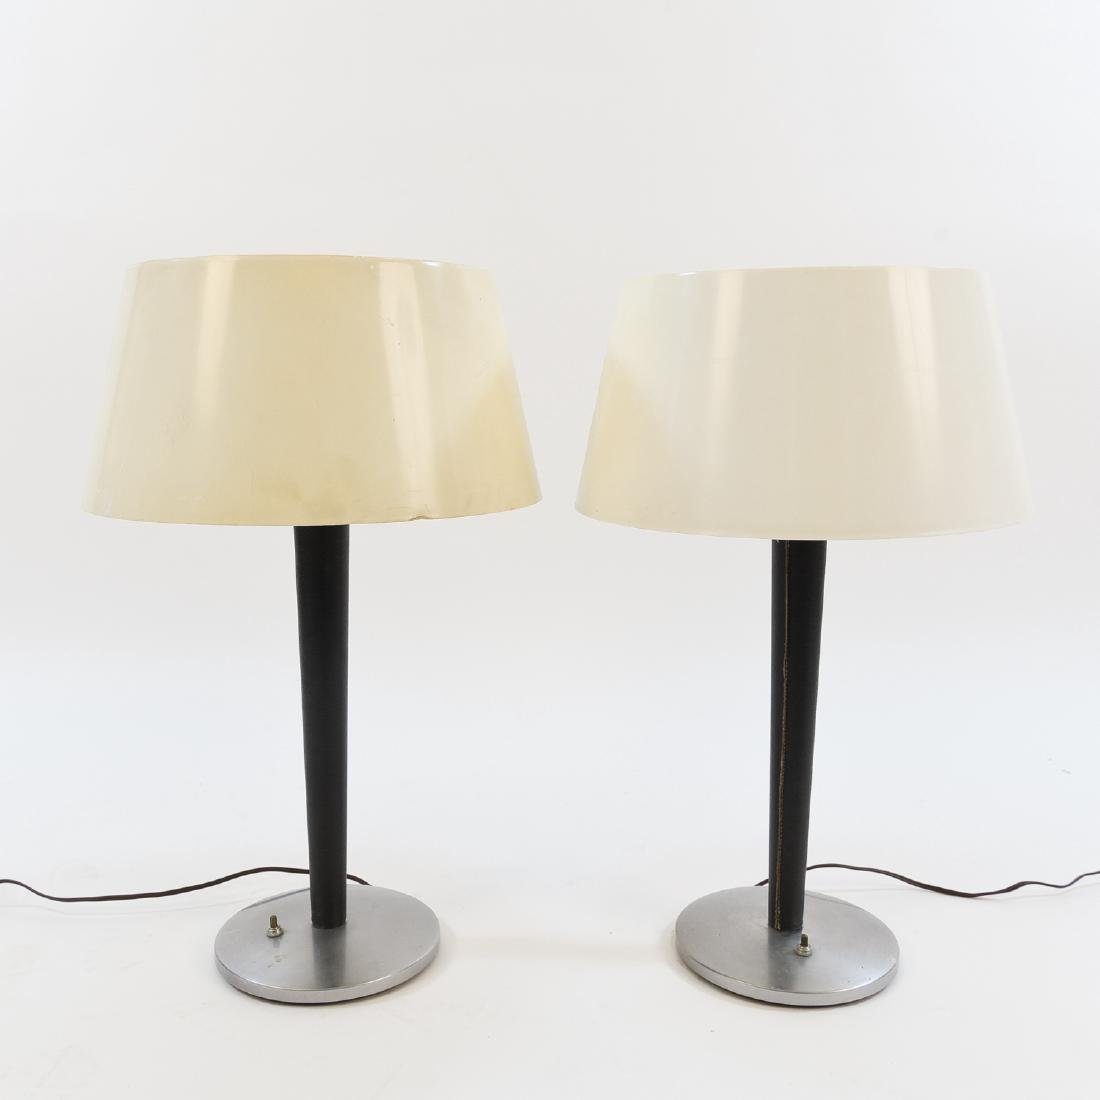 PAIR OF LIGHTOLIER GERALD THURSTON TABLE LAMPS